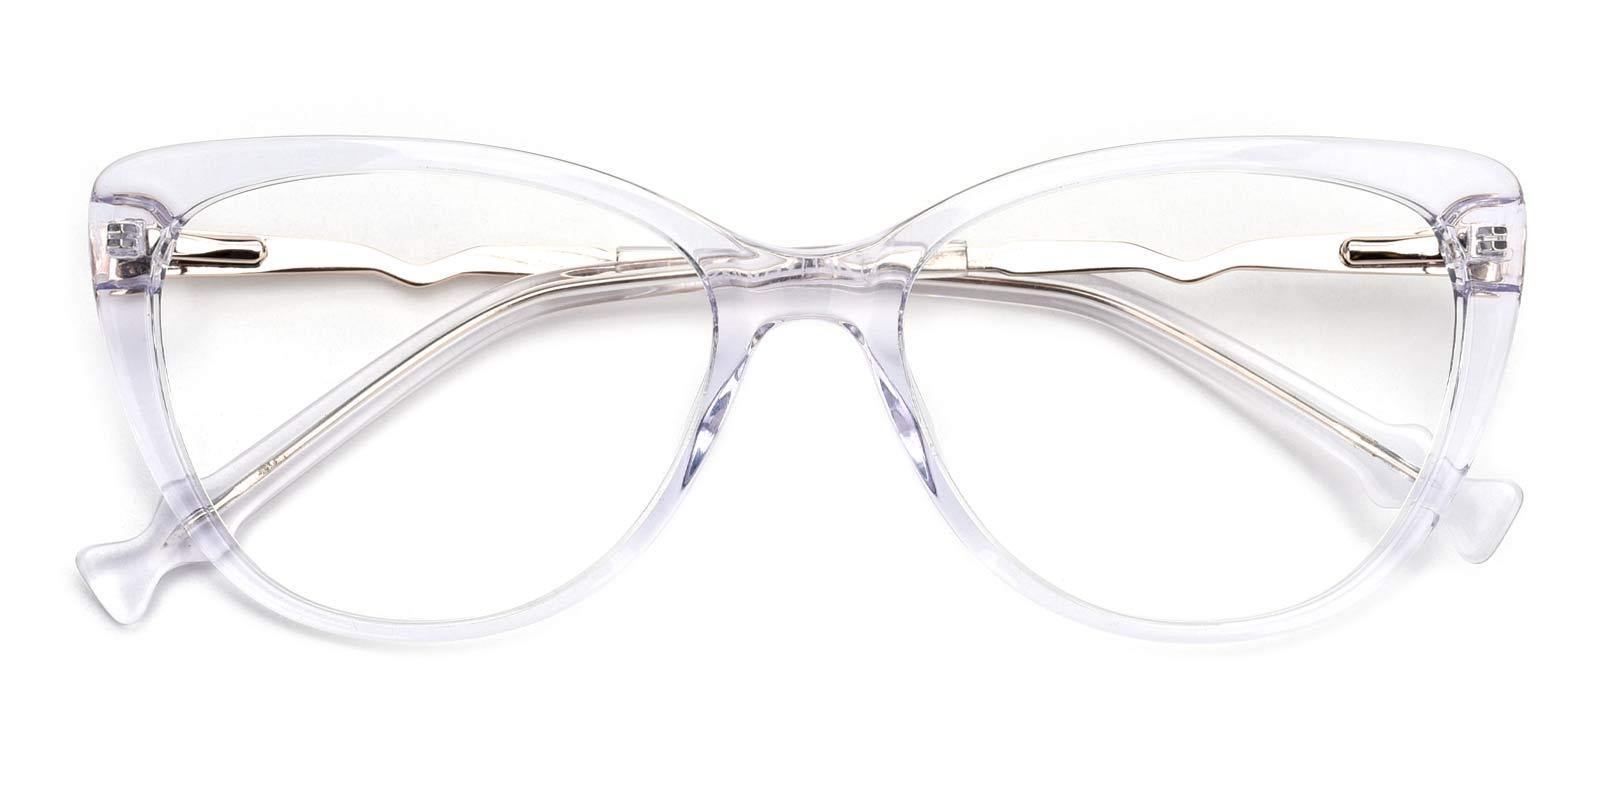 Winni-Translucent-Cat-TR-Eyeglasses-detail